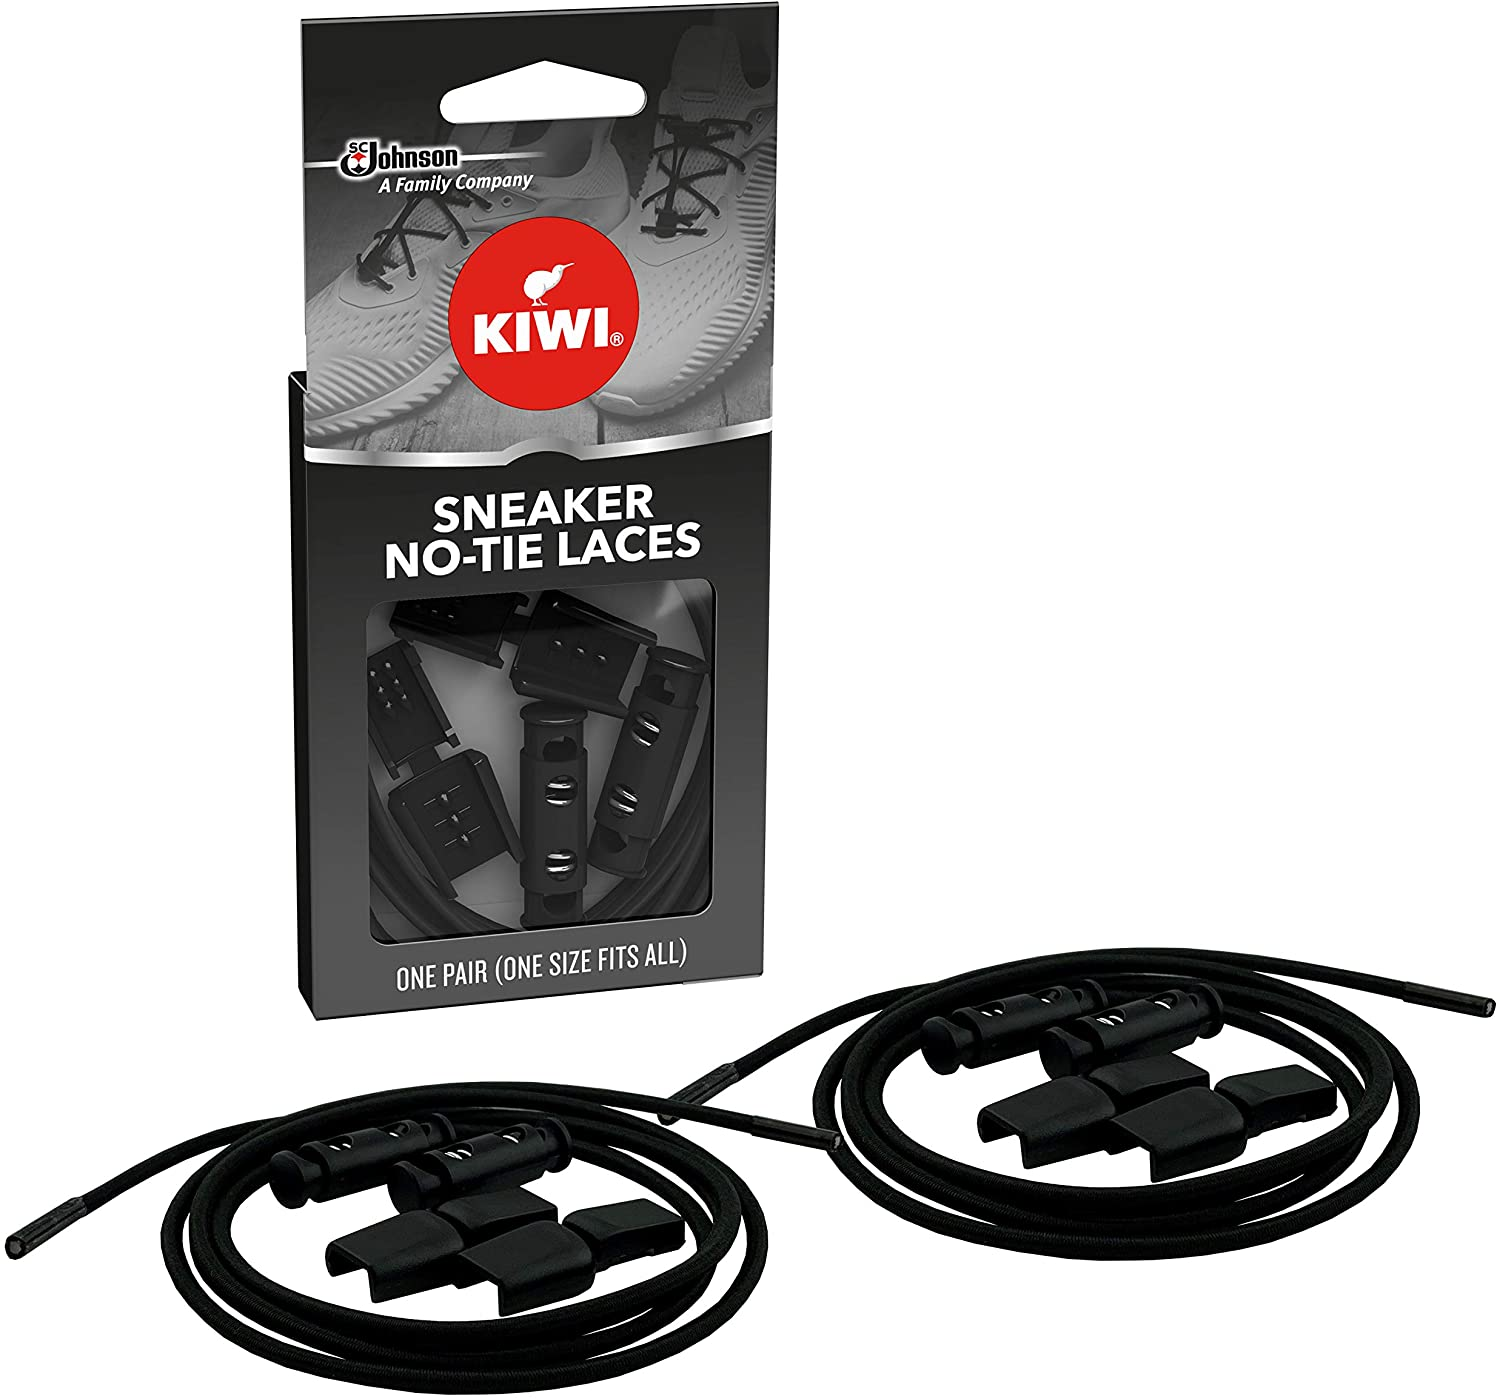 KIWI Sneaker No-Tie Shoe Laces, Black, One Size Fits All, 1 Pair : Clothing, Shoes & Jewelry